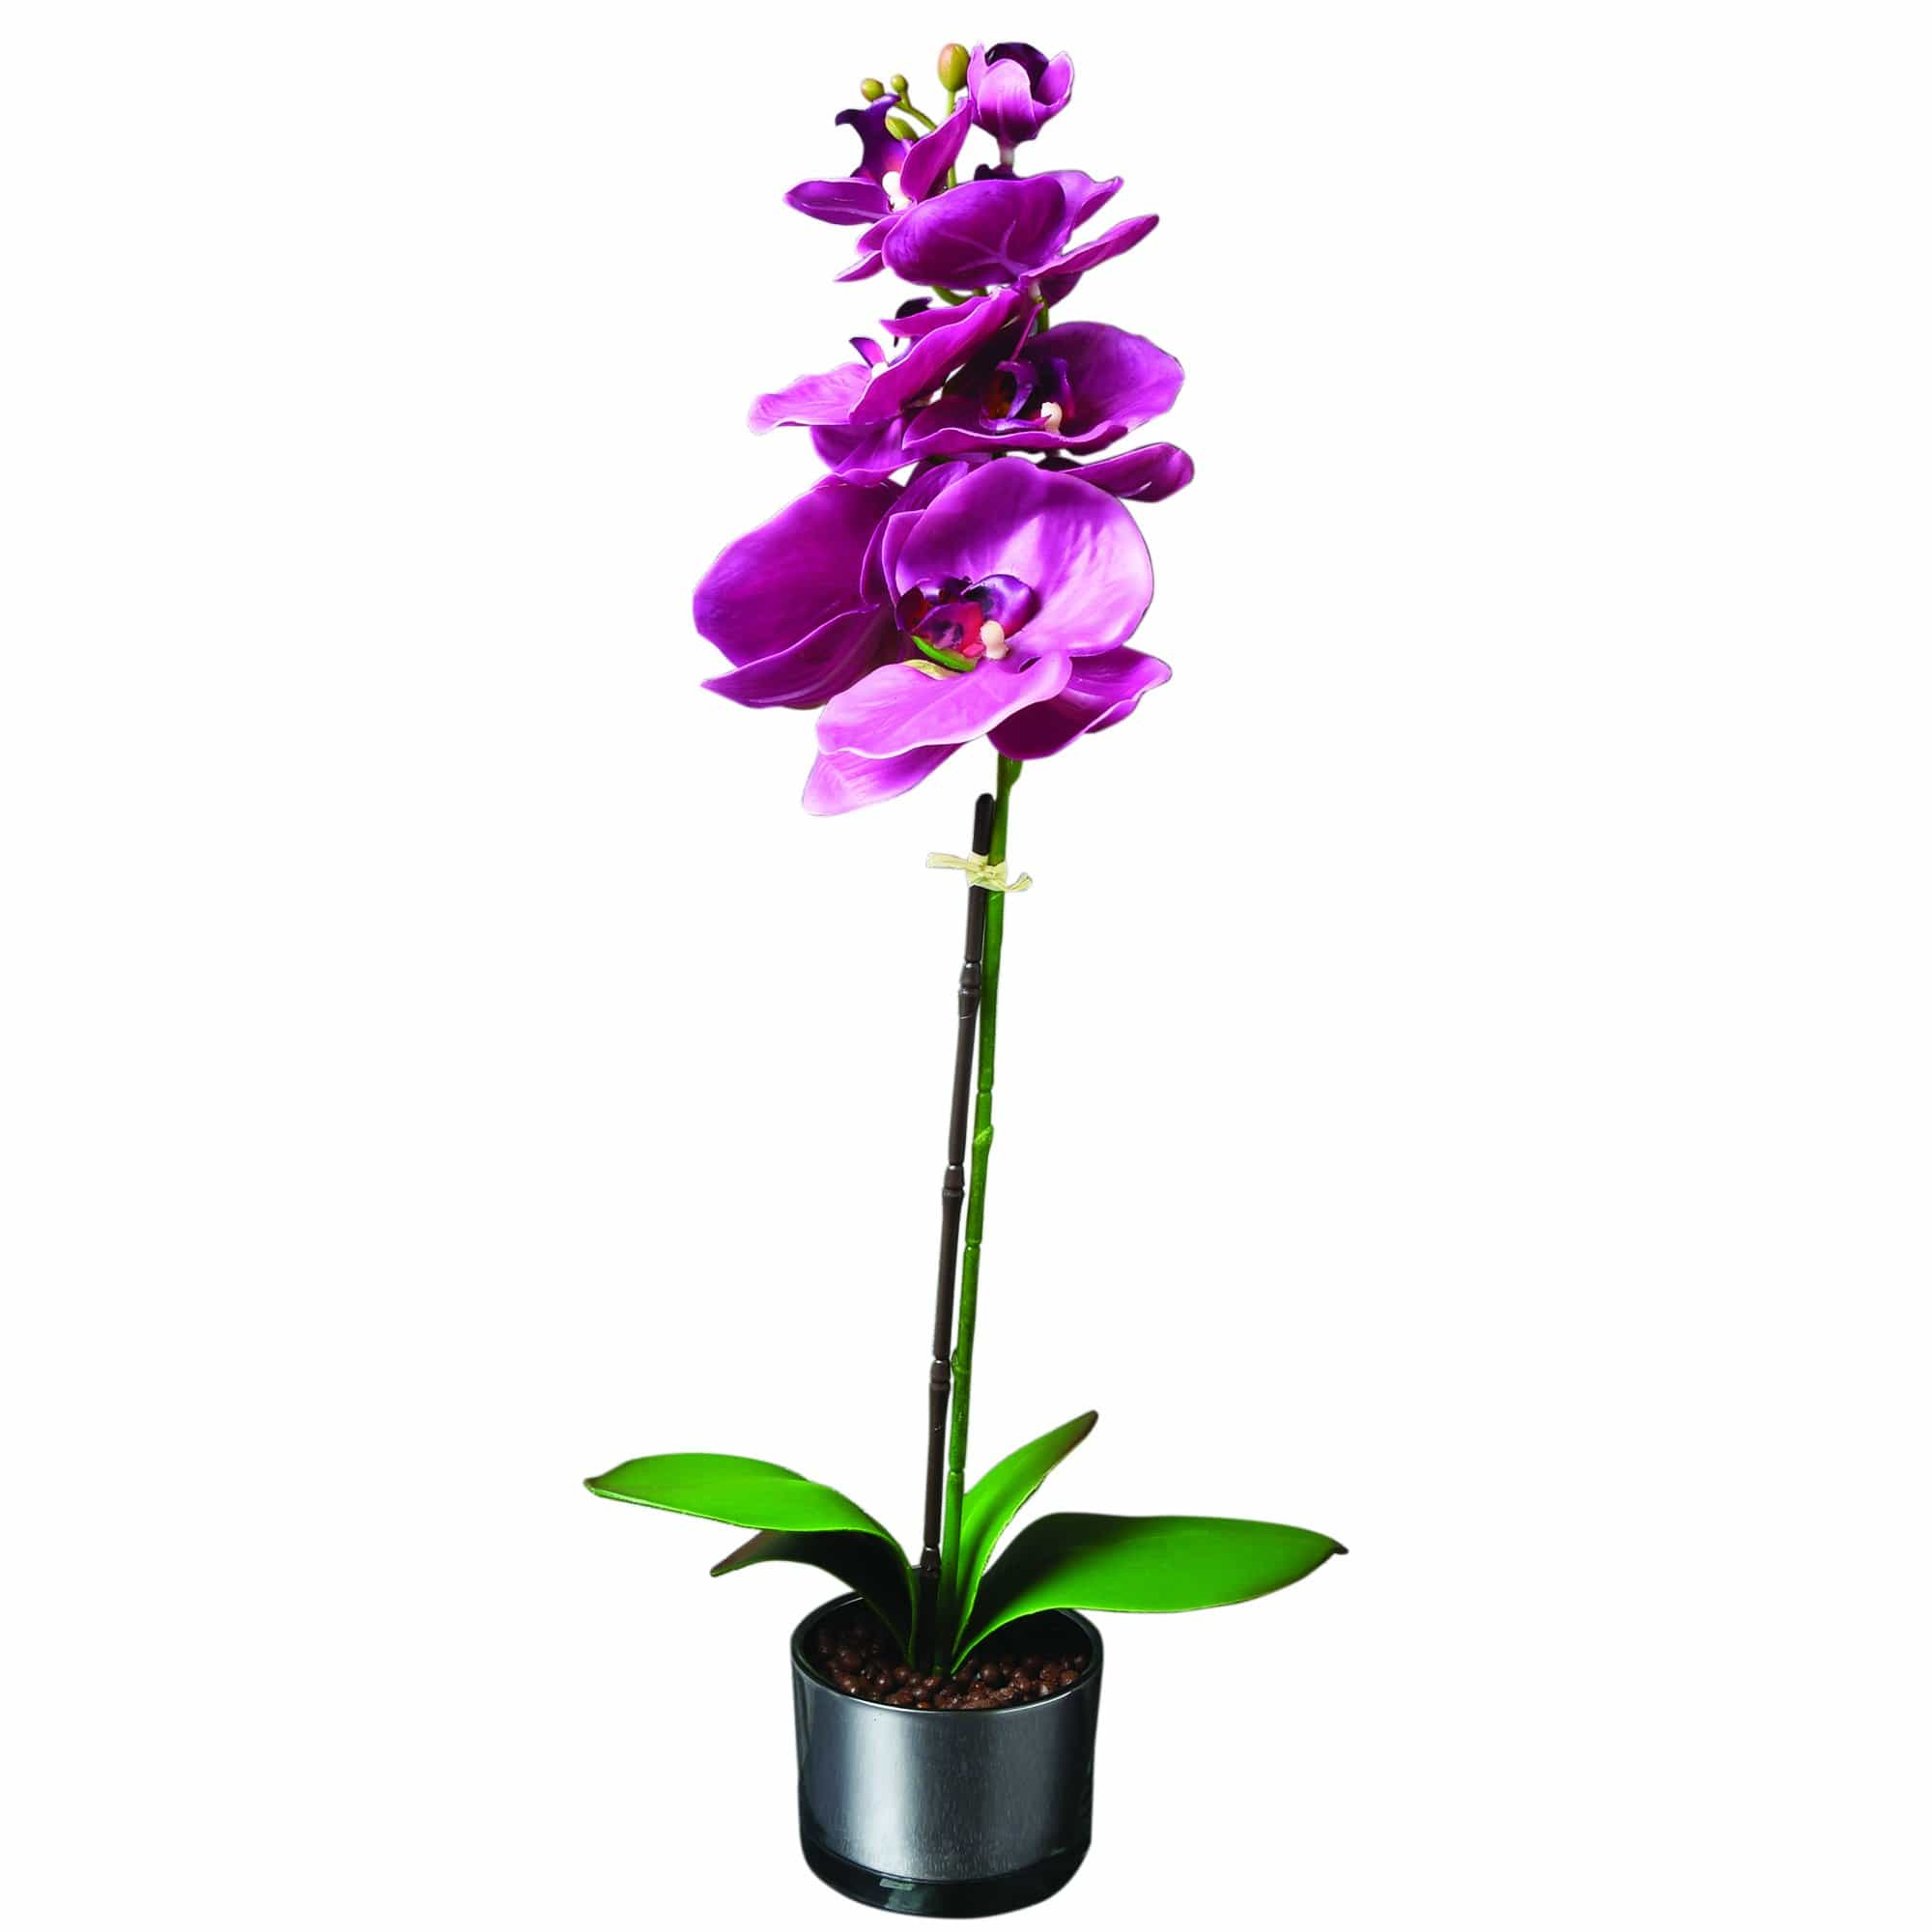 Candlelight Home Artificial Plants & Flowers The Flower Patch Purple Orchid in Glass Pot 48cm 4PK